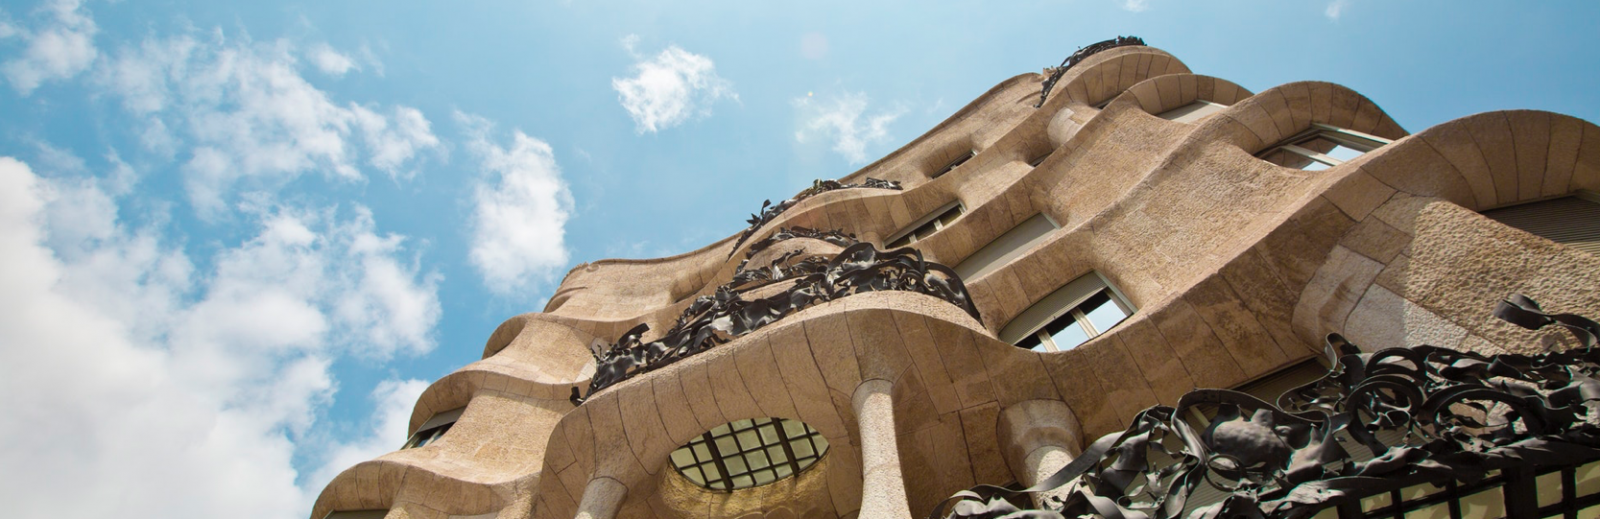 hotels, travel, Catalan, Spain, holidays, Gaudi